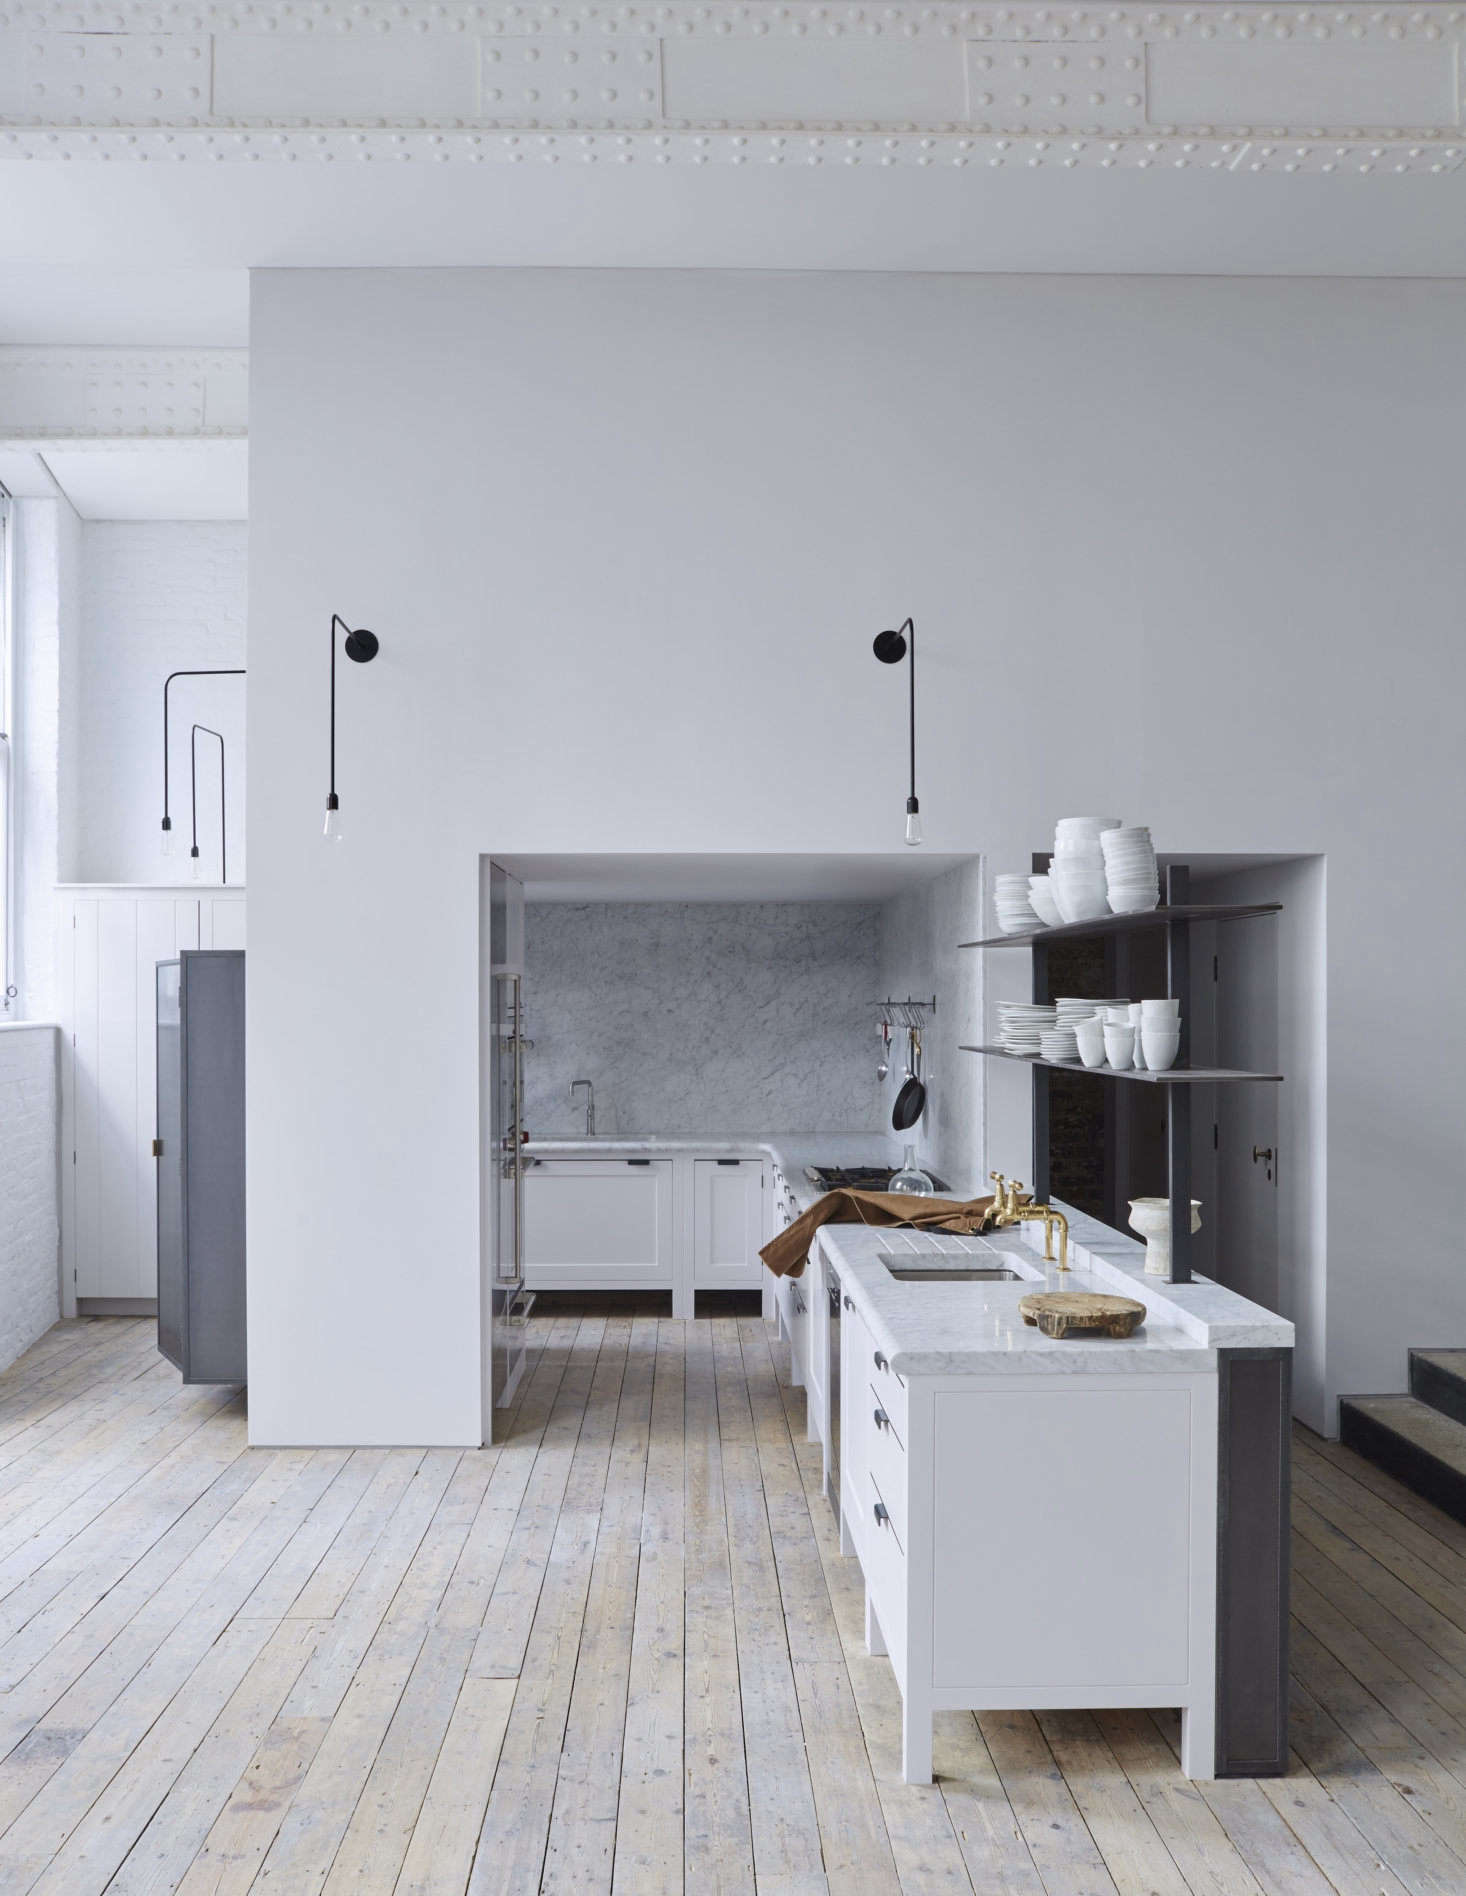 Seth Stein Architectsrevitalized a former schoolhouse in London by adding a Plain English kitchen, and clad two entire walls in marble. Photograph courtesy ofPlain English; see the full kitchen inKitchen of the Week: Plain English Goes Contemporary in a Converted London Schoolhouse.